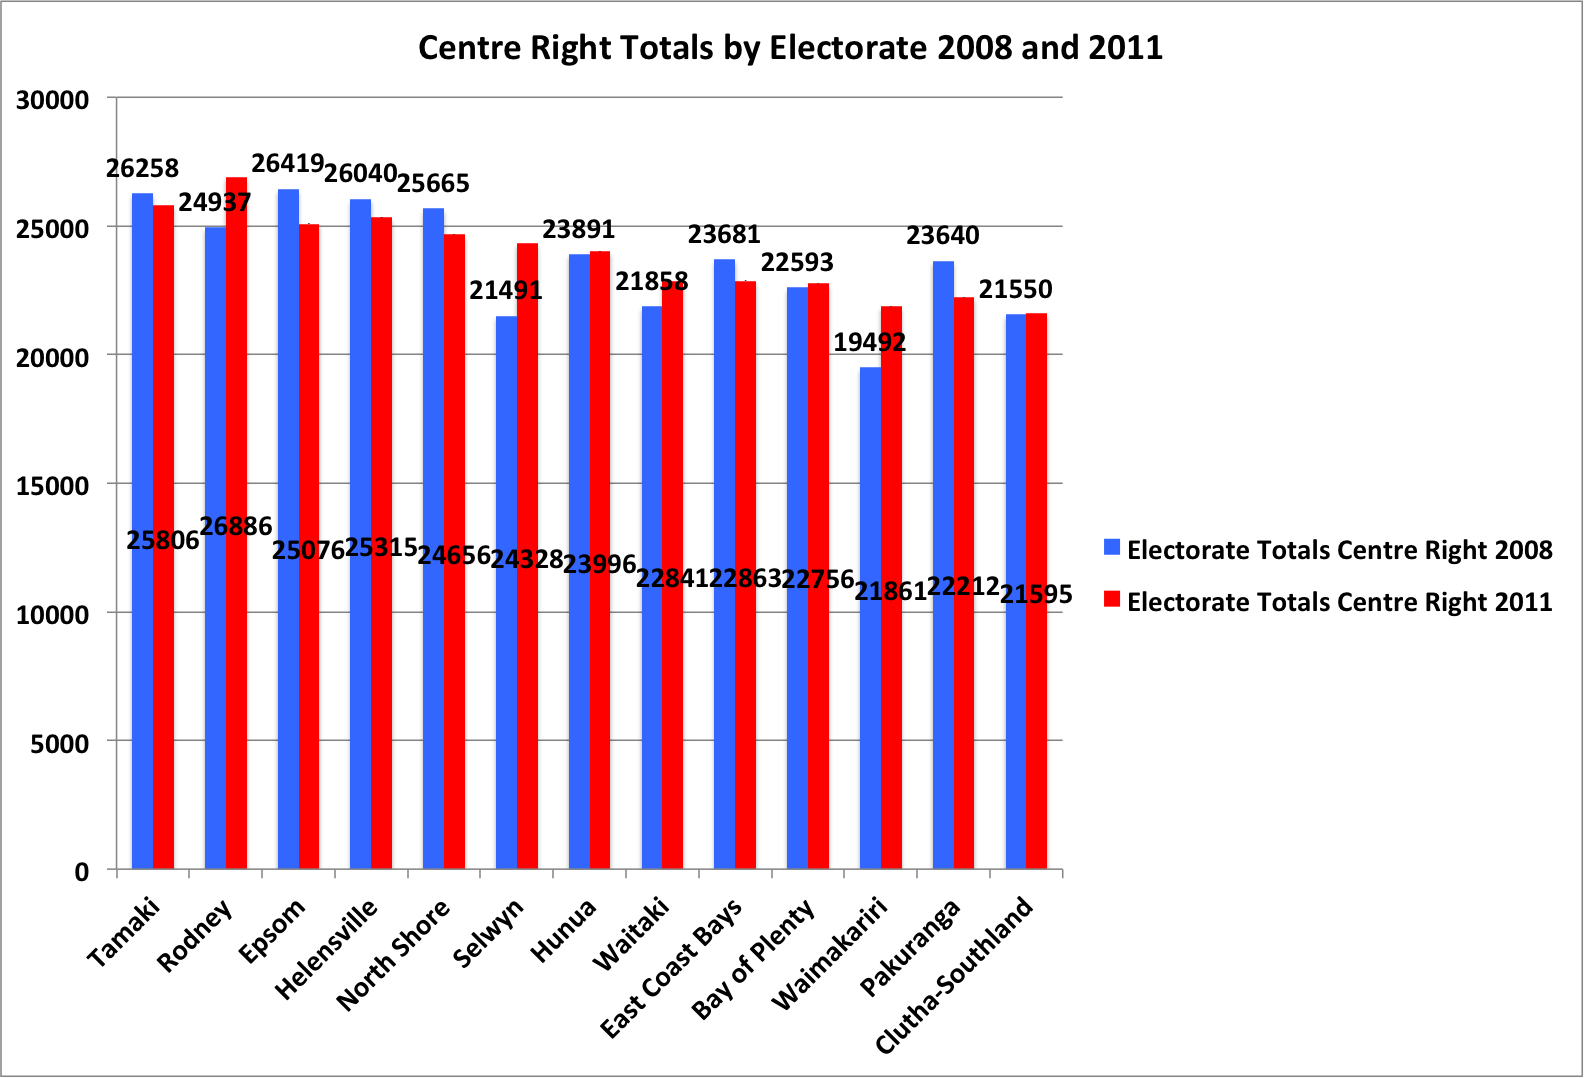 Combined Centre Right Vote by Electorate 2008 and 2011